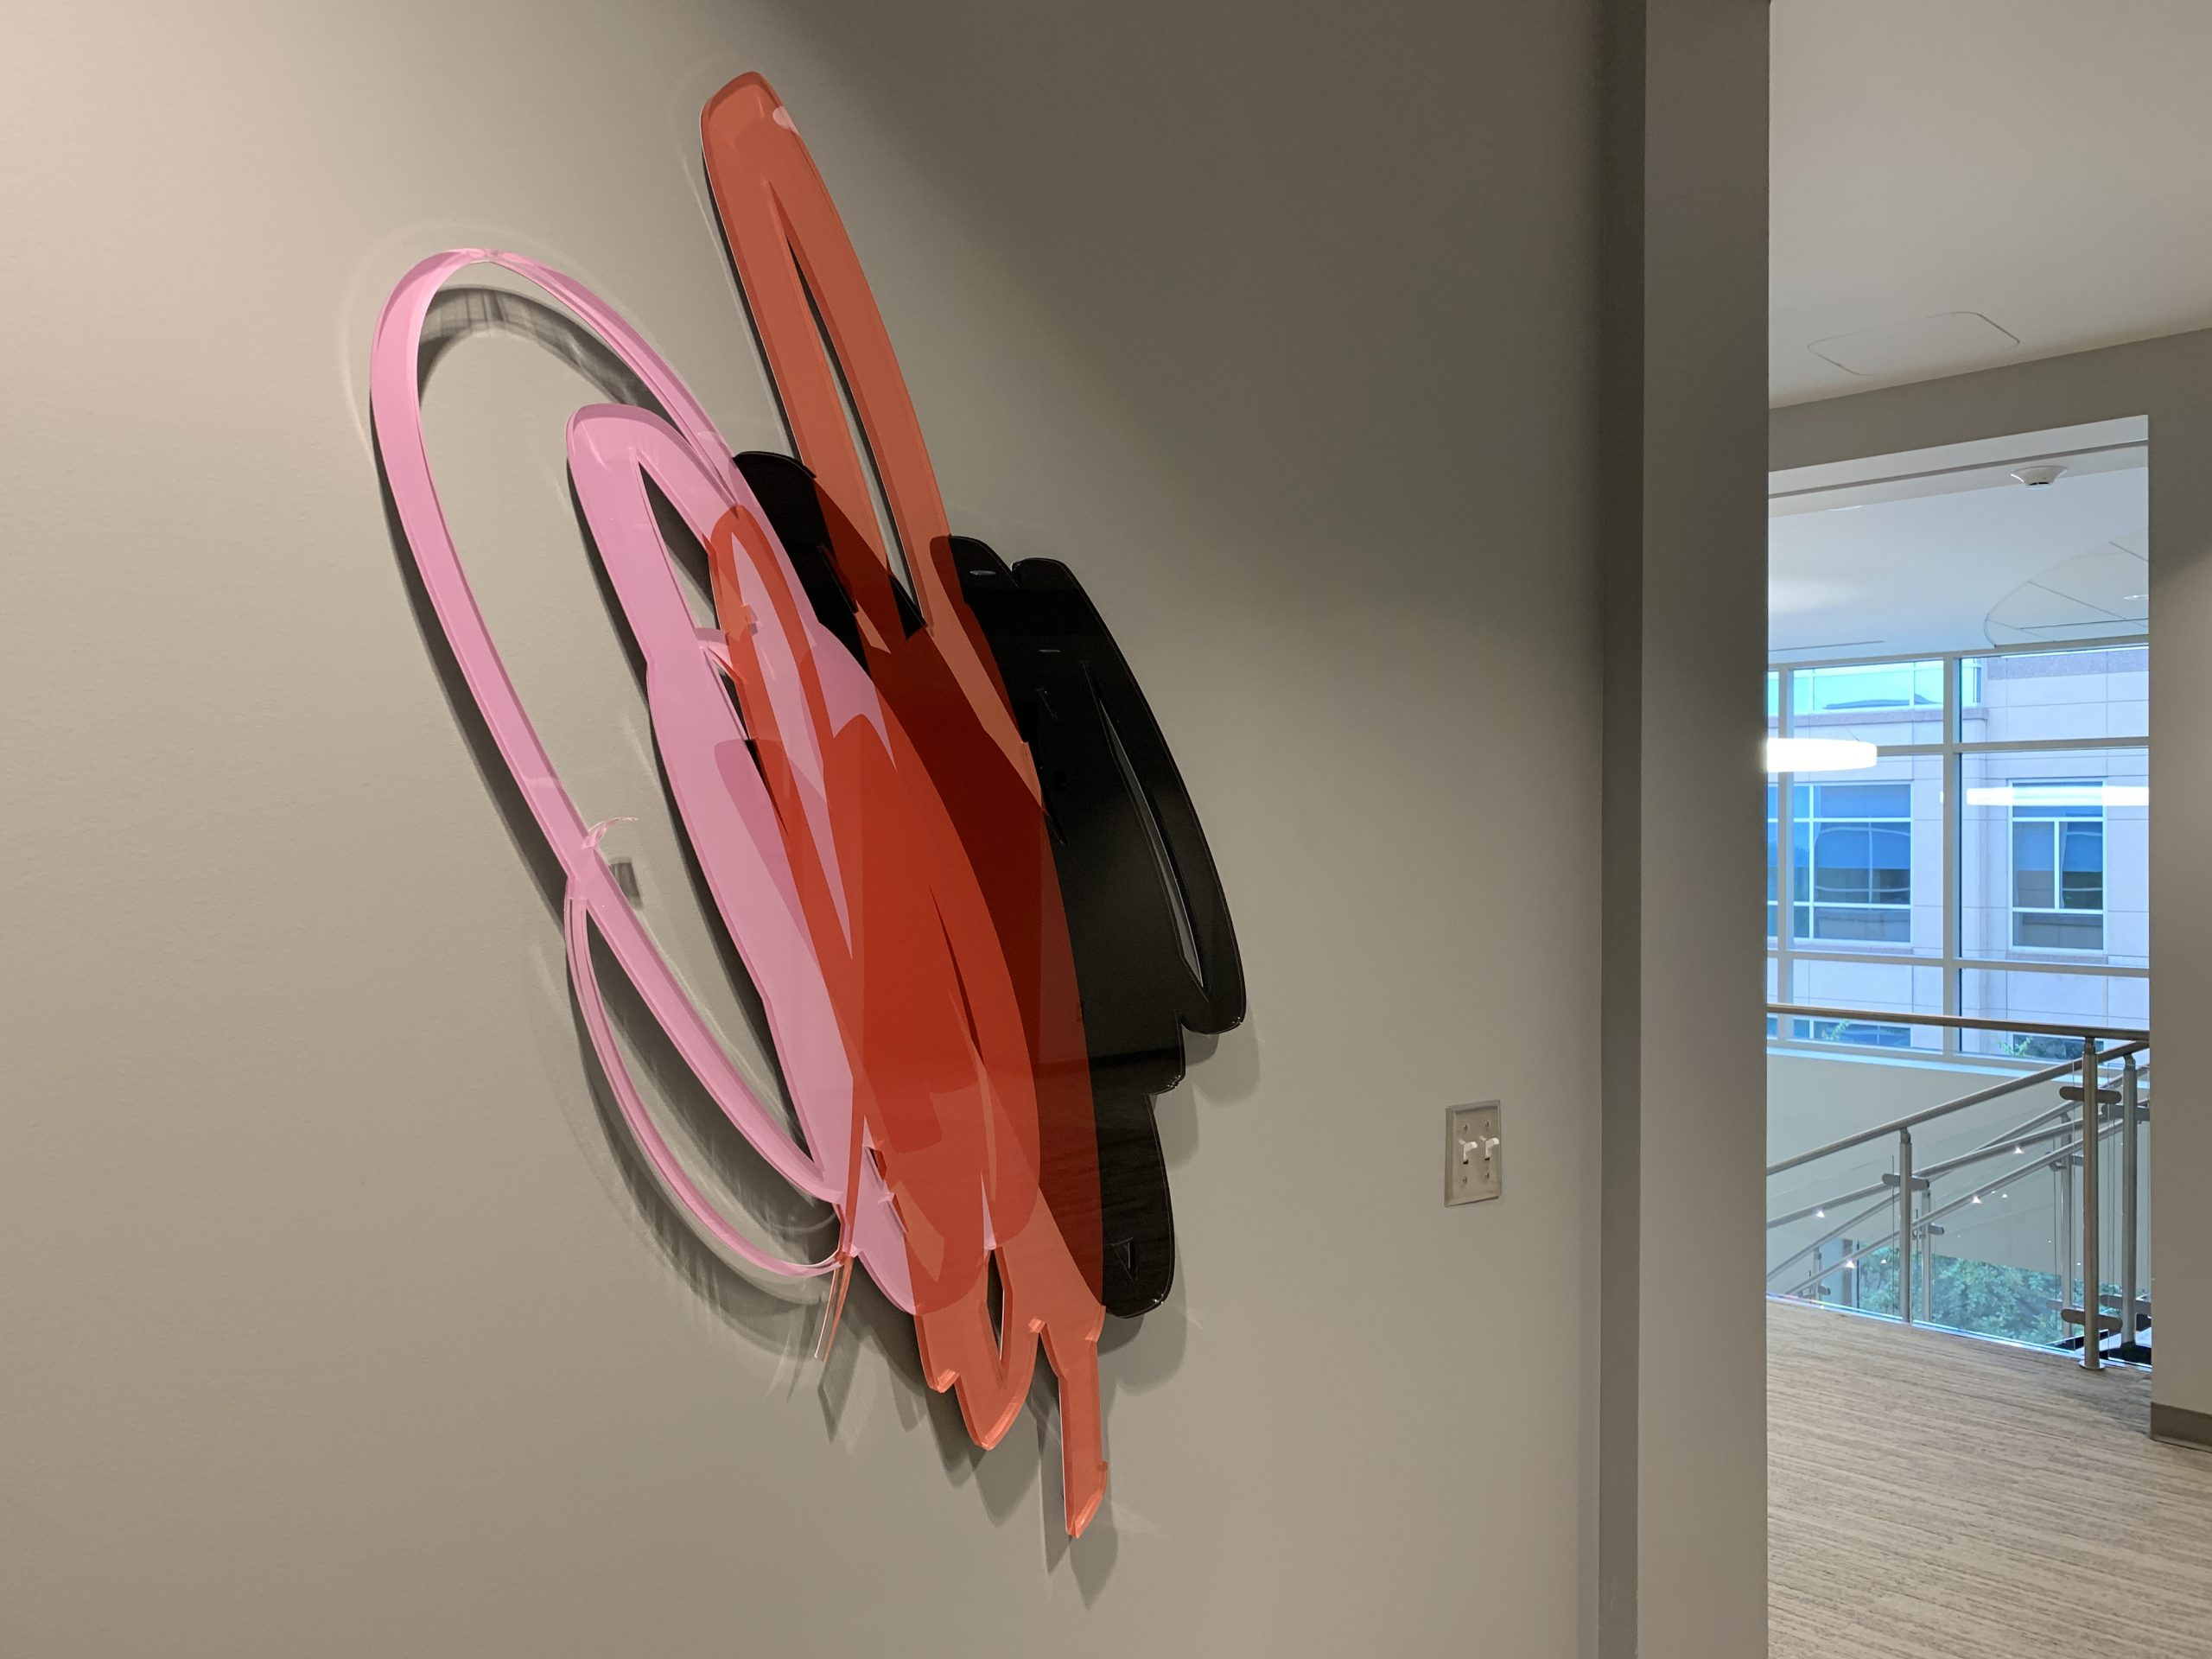 Two Wall Sculptures, Corporate Installation, Atlanta 2020